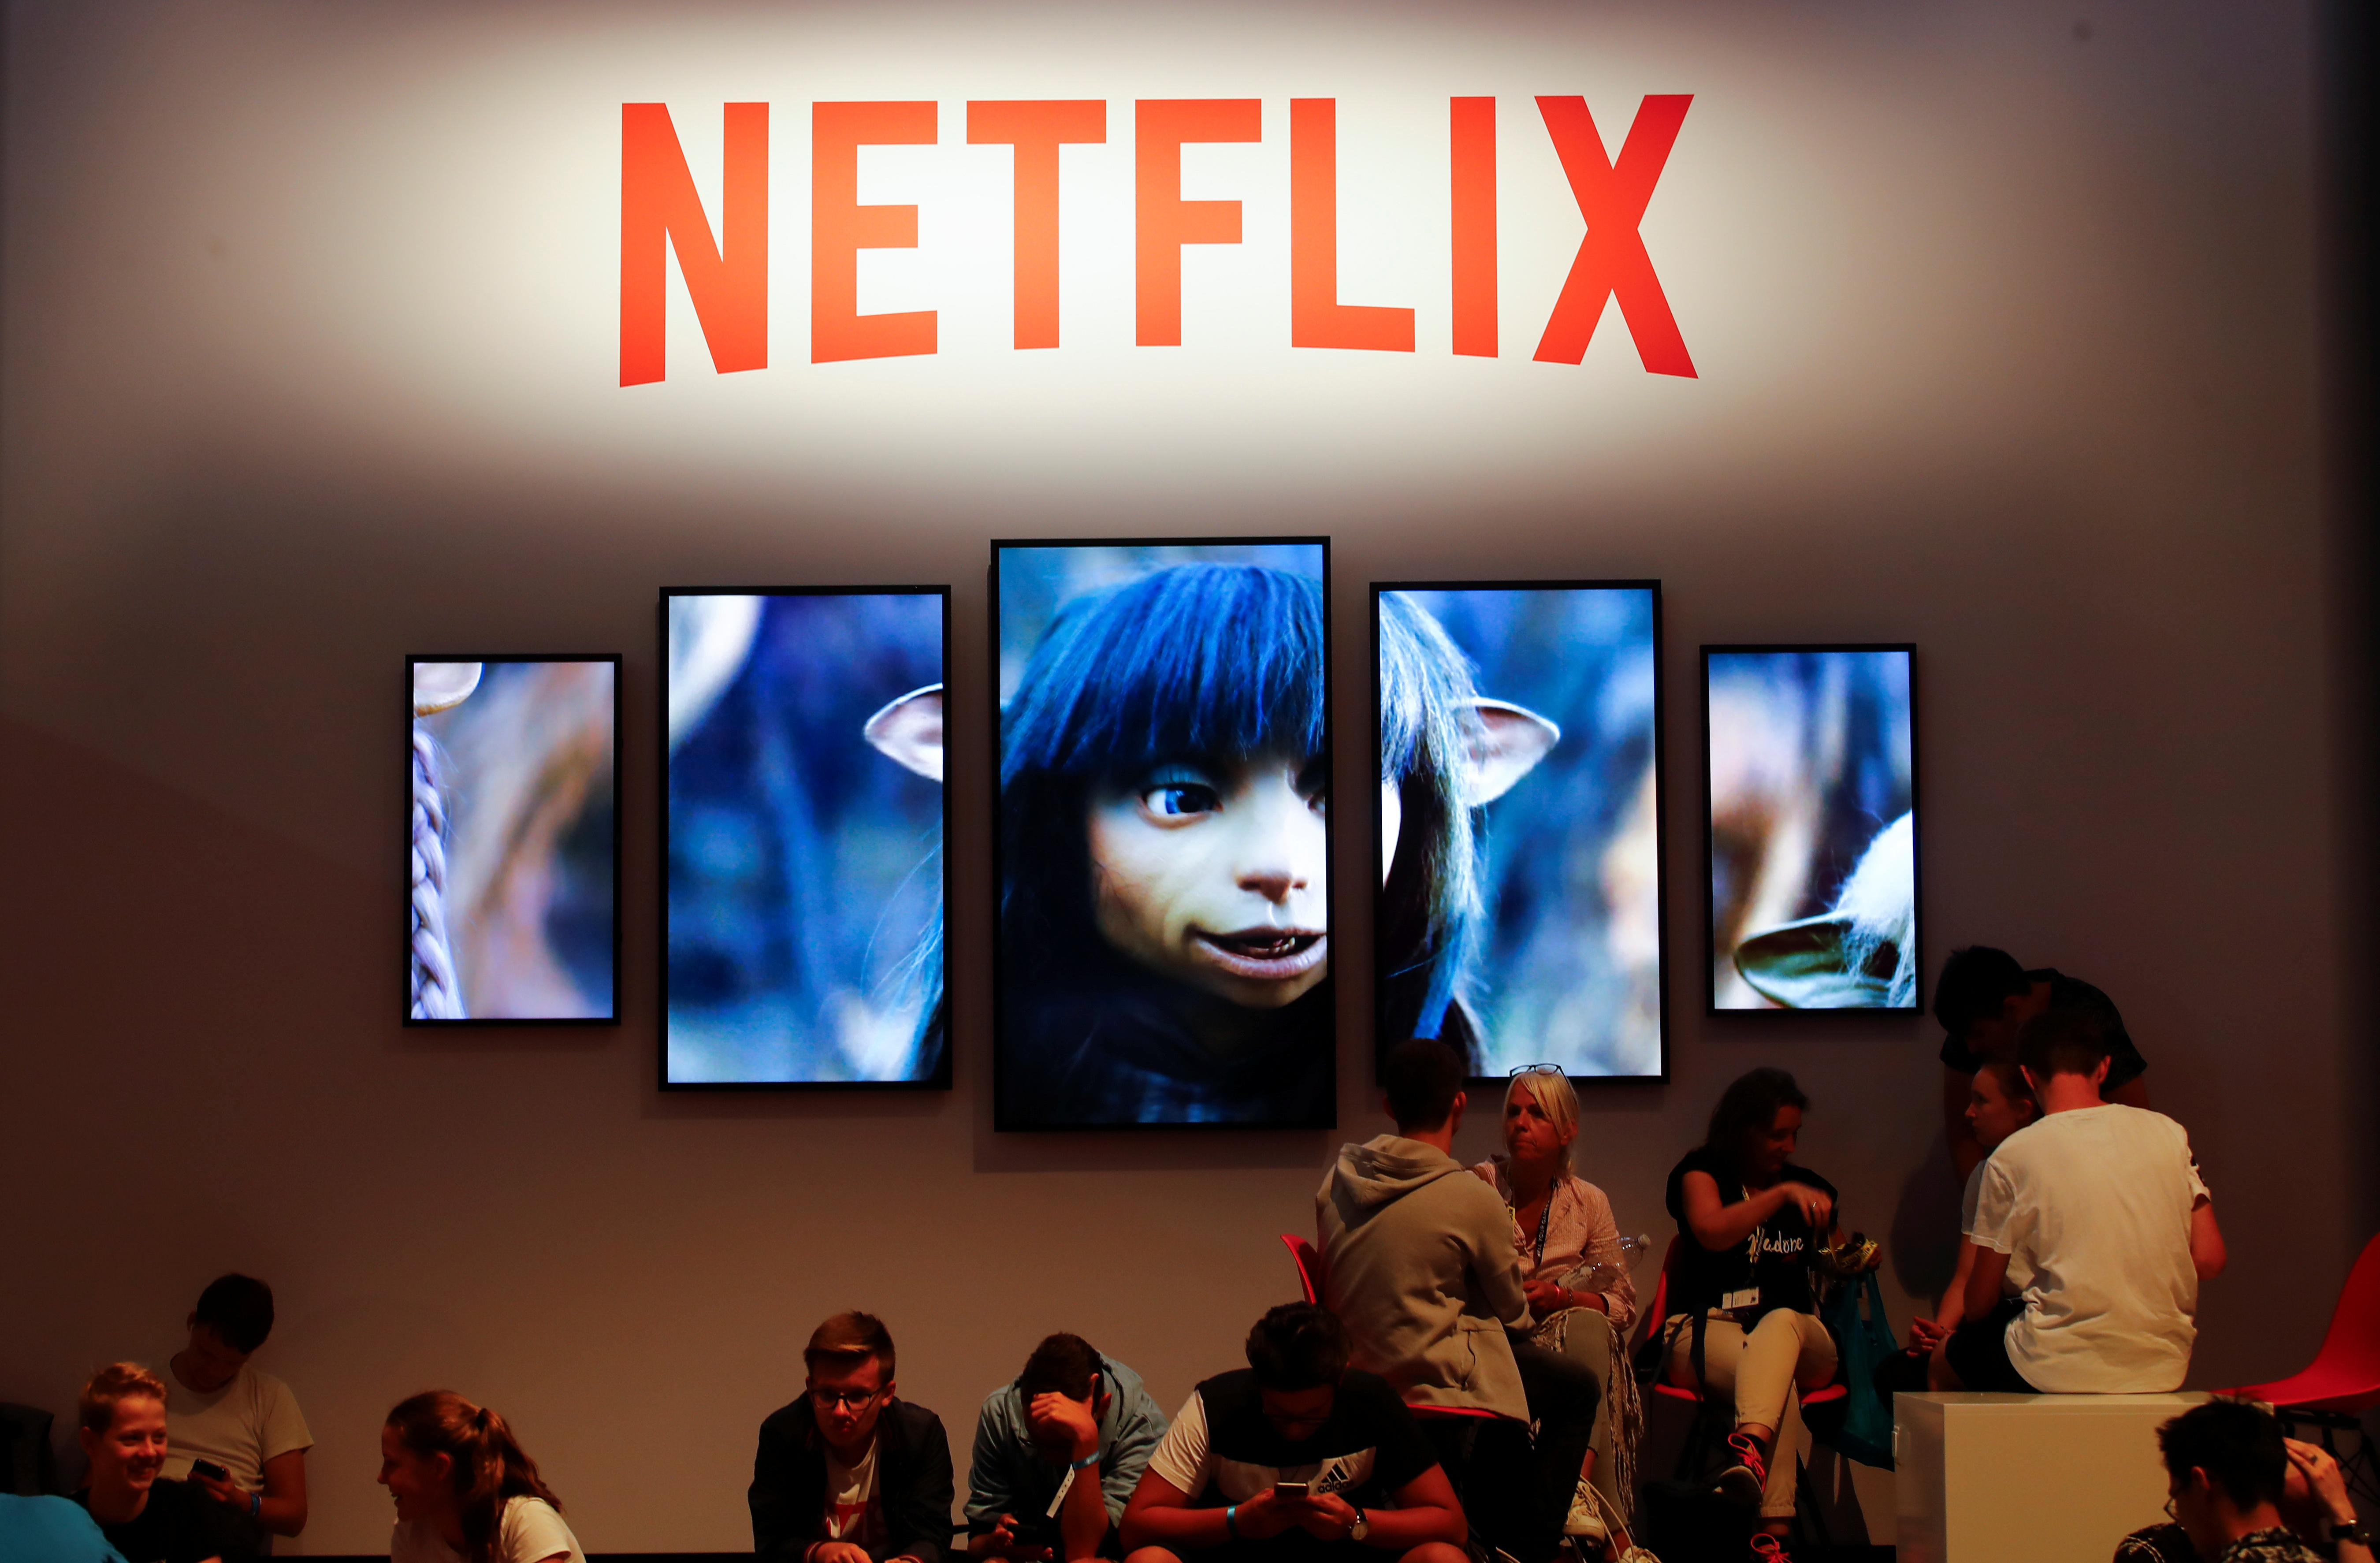 netflix investors are fleeing the stock amid onslaught of